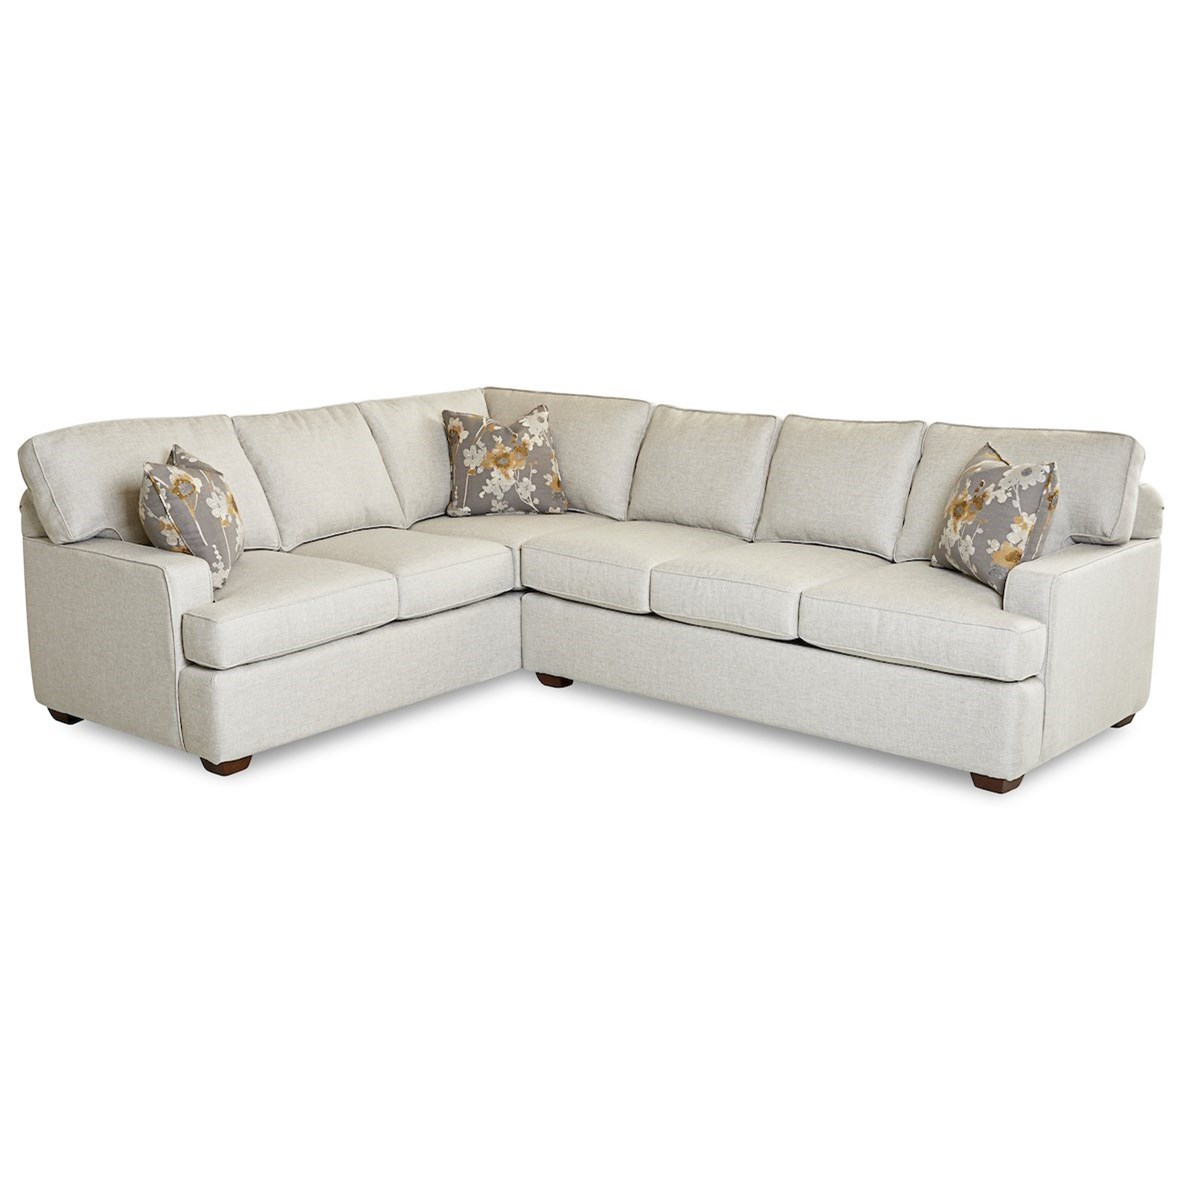 Selection 2-Piece Sectional Sofa w/ RAF Sofa by Klaussner at Northeast Factory Direct